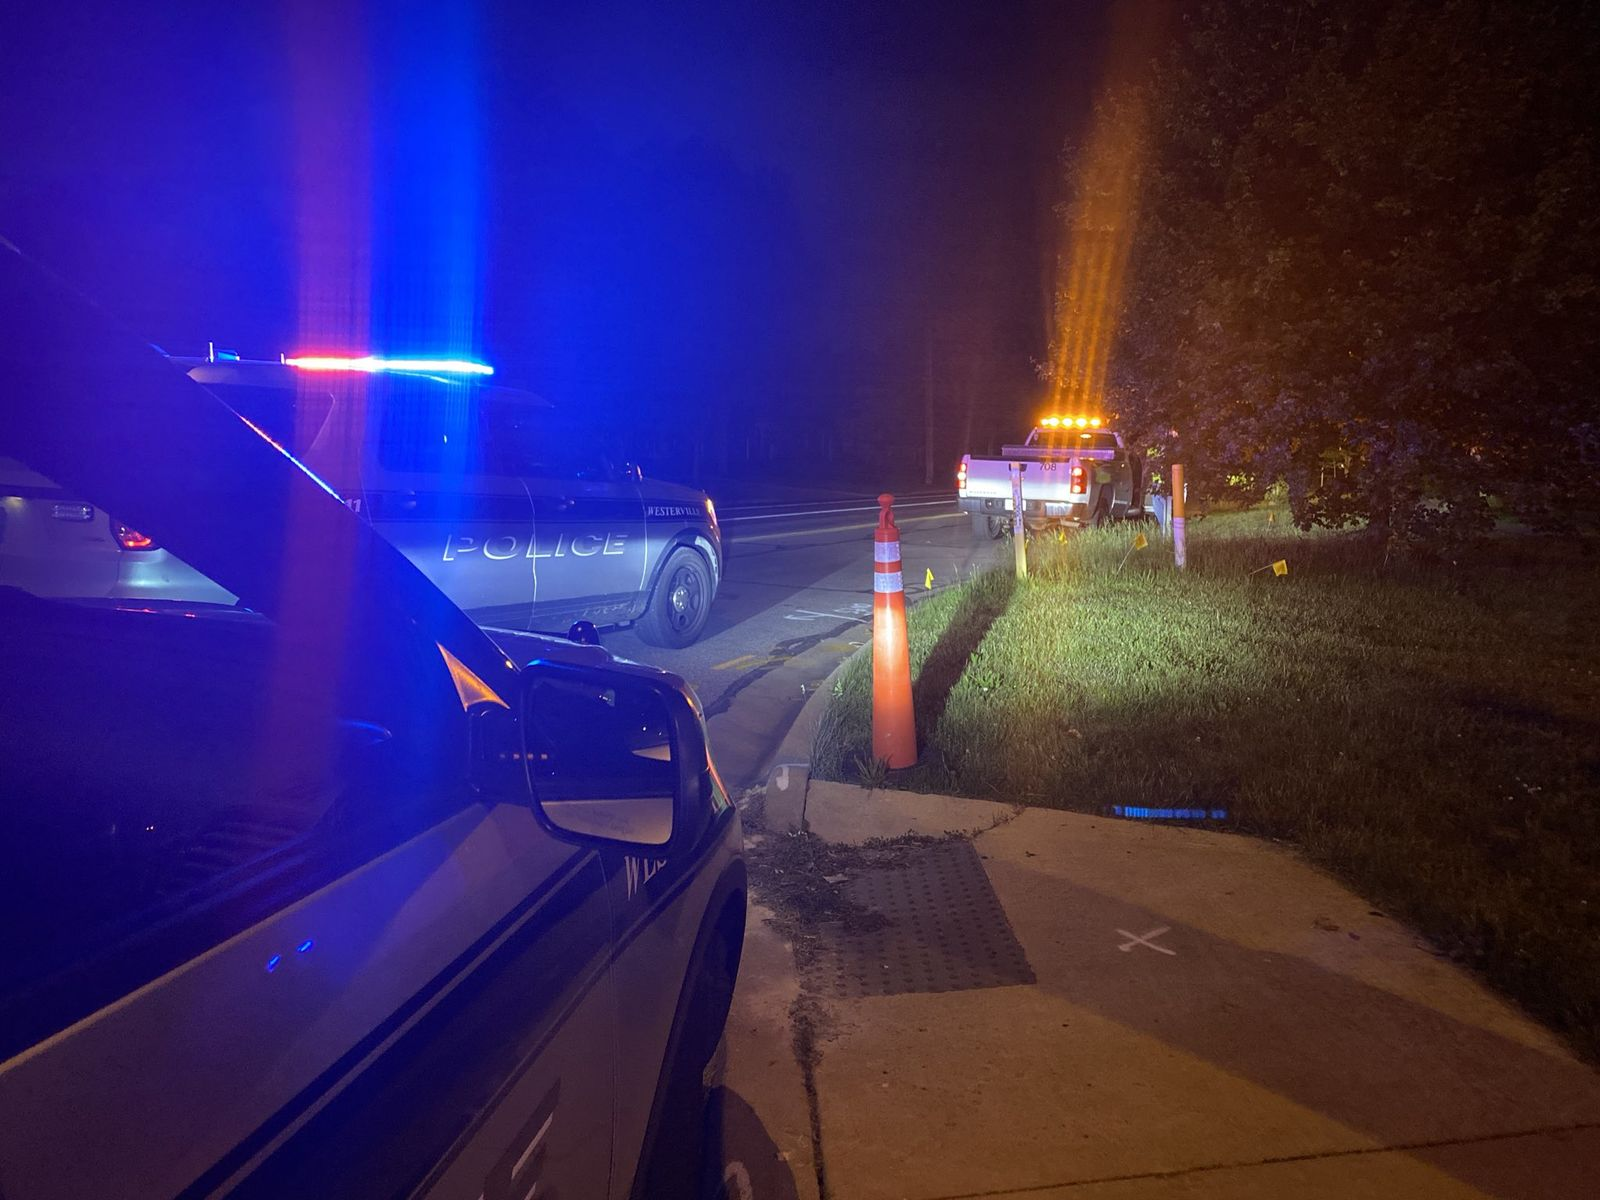 <p>Westerville police and members of the Westerville Service Department rescued three ducklings that were stuck in a storm drain Wednesday night. (Westerville Police Department)</p>